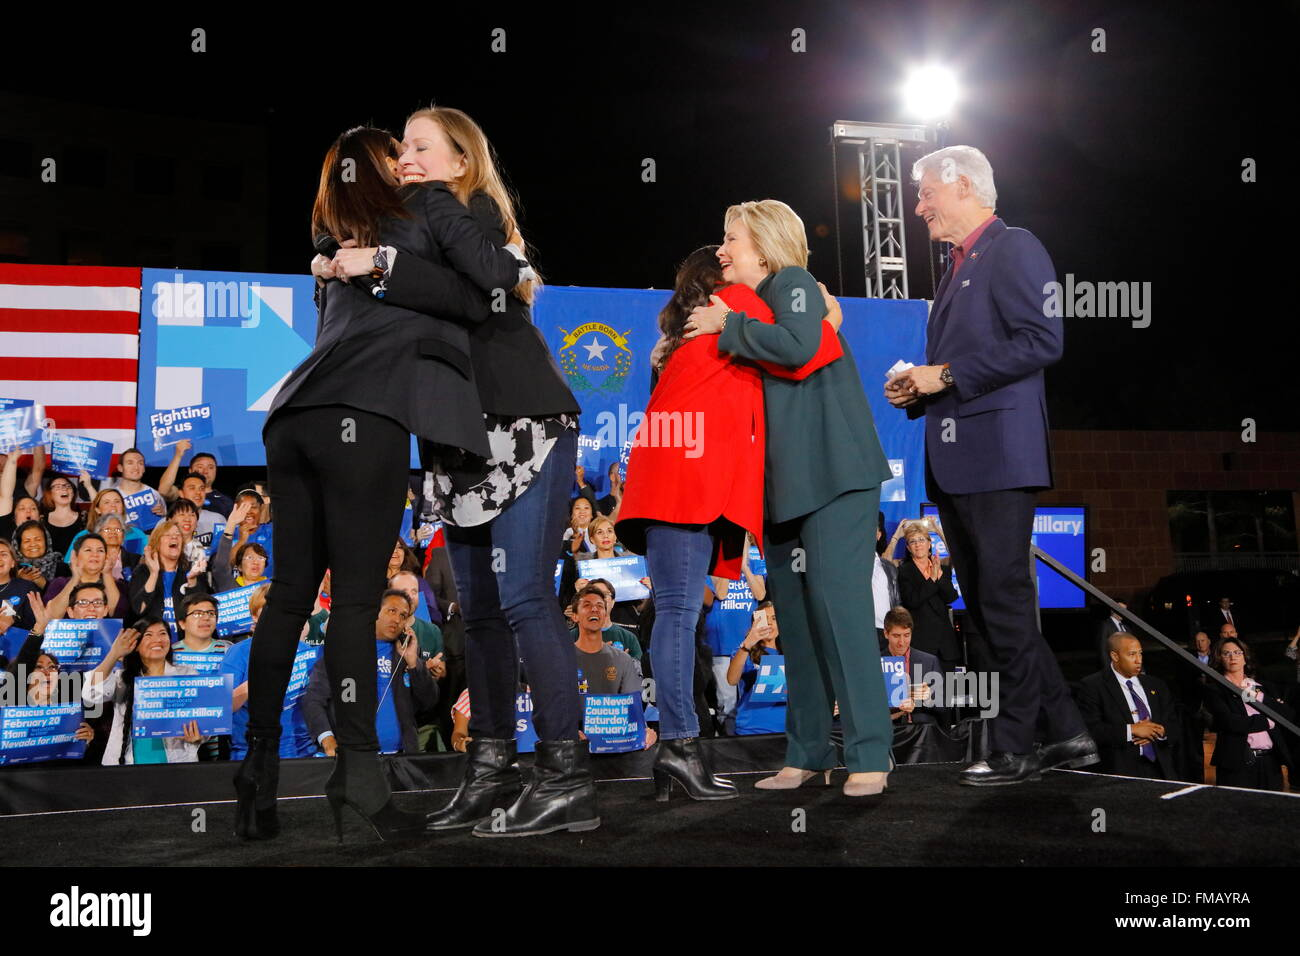 Democratic Presidential Candidate Hillary Clinton Campaigns In Las Vegas, Nevada - Stock Image